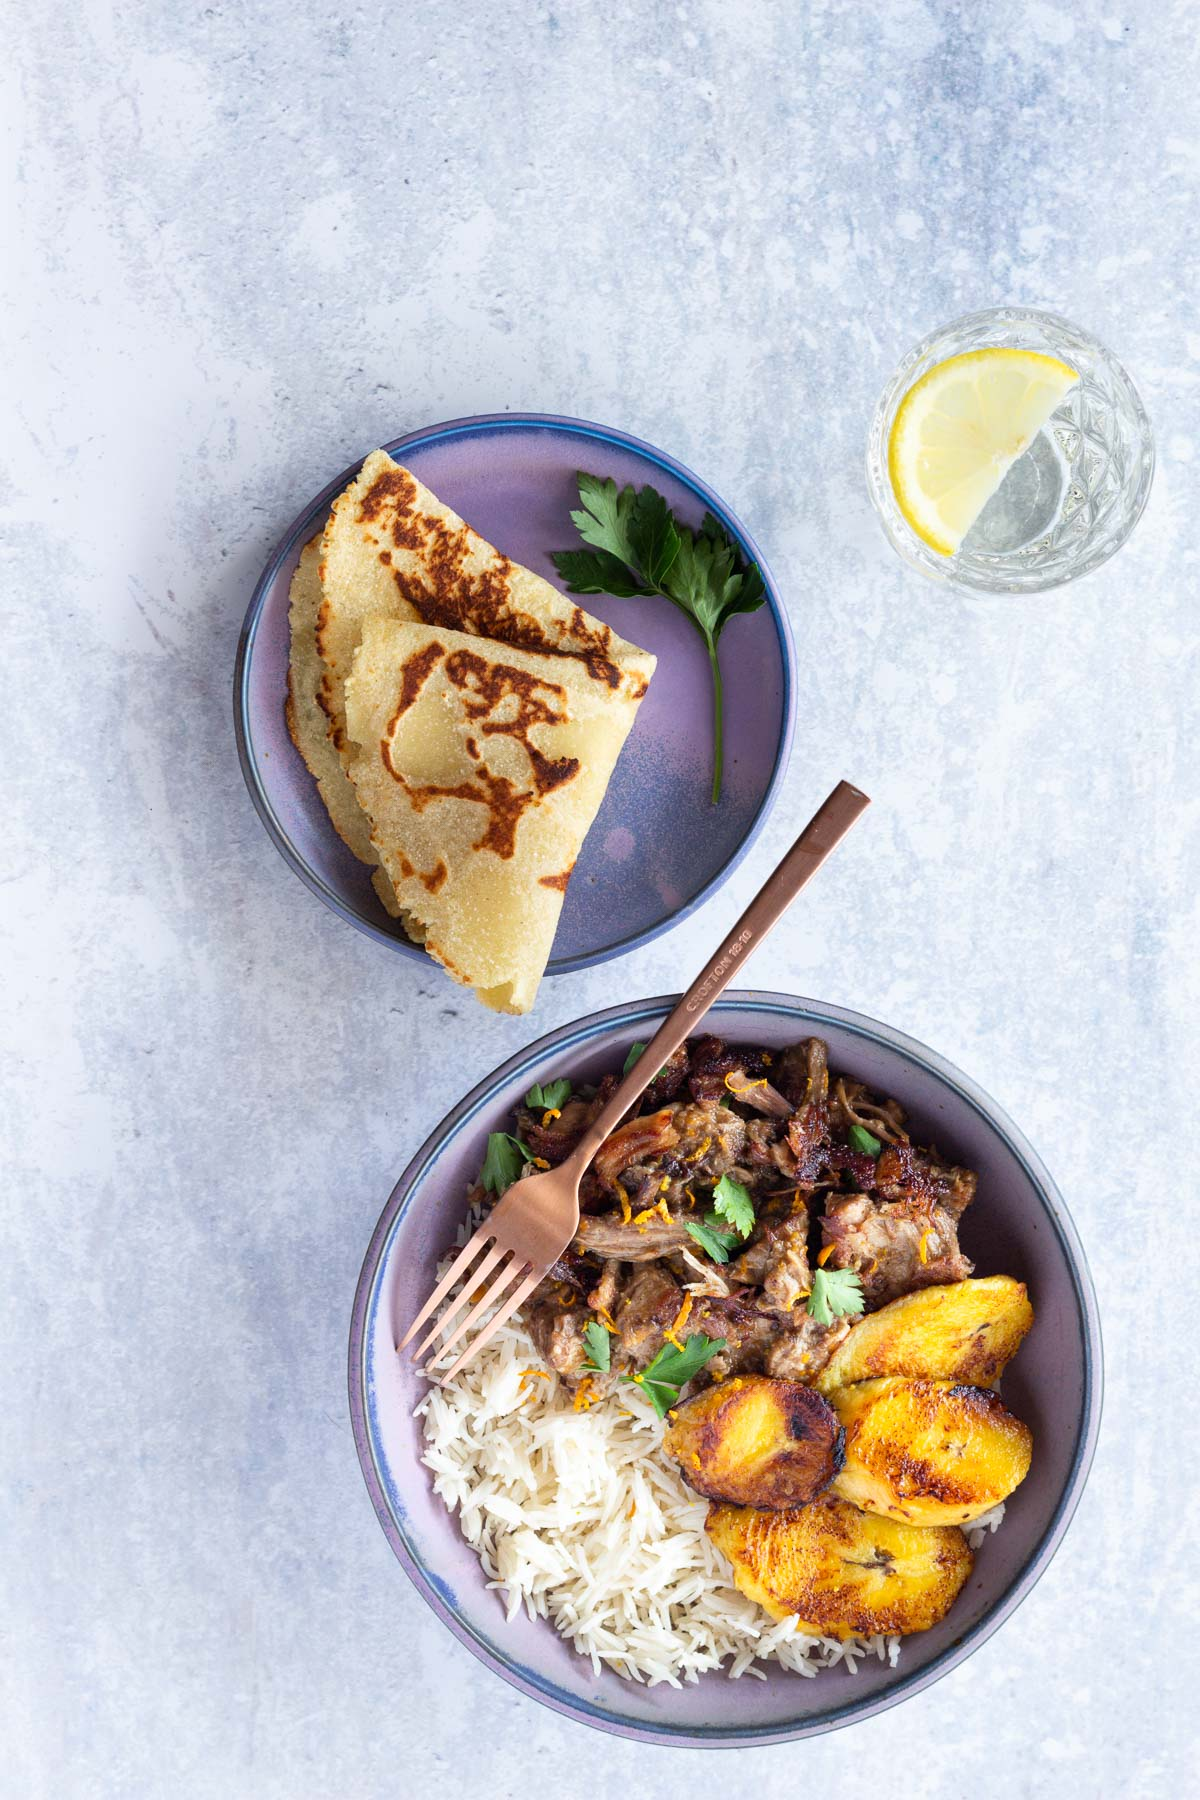 Top down photo of Crispy Carnitas with Cinnamon, Garlic and Orange Sauce (Pulled Pork) served with white rice